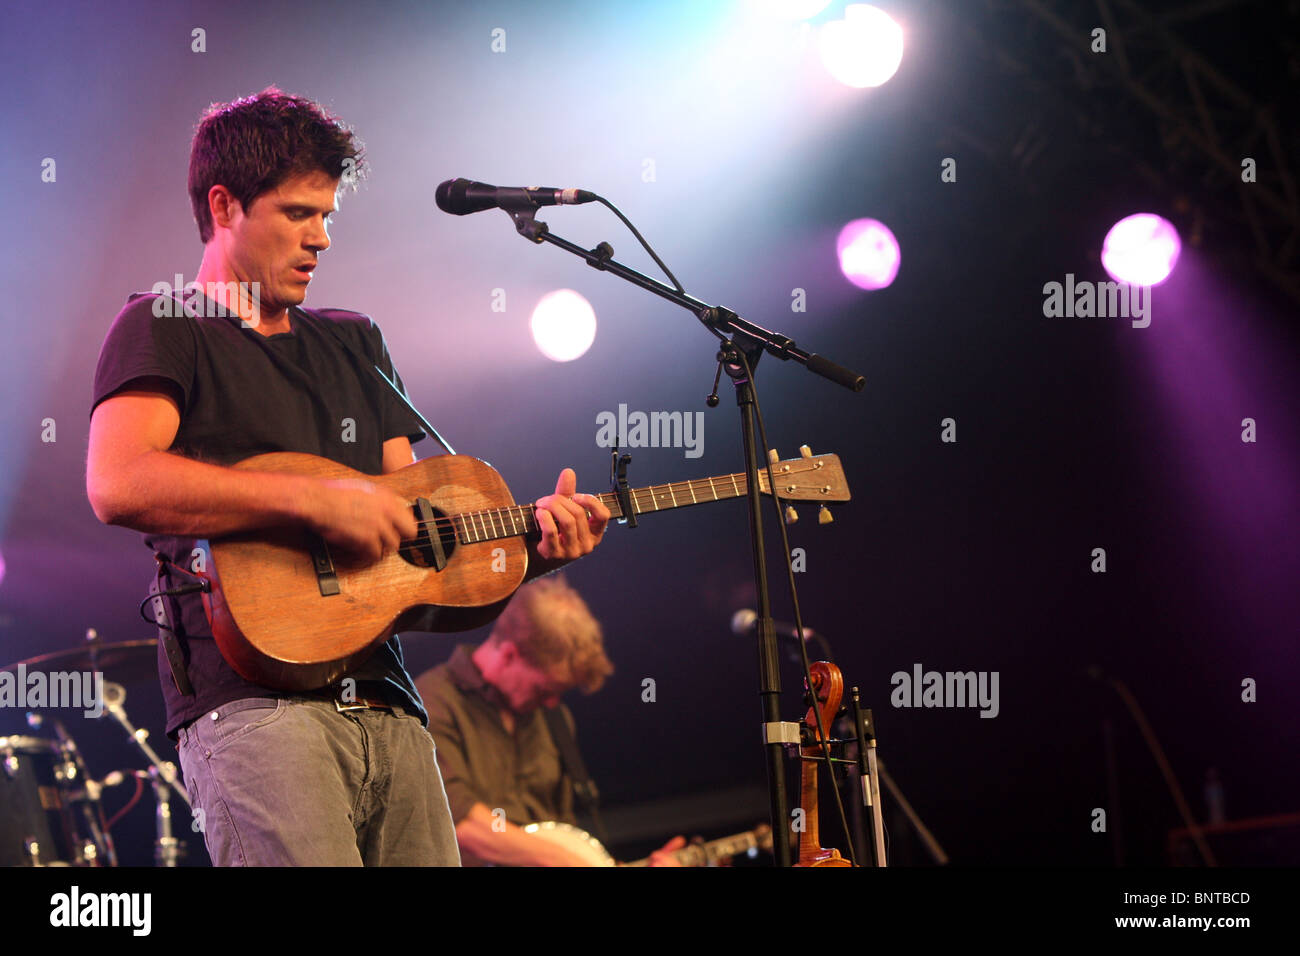 The Cambridge Folk Festival at Cherry Hinton Hall, Cambridge,August 1st 2010.Picture shows Seth Lakeman performing. - Stock Image